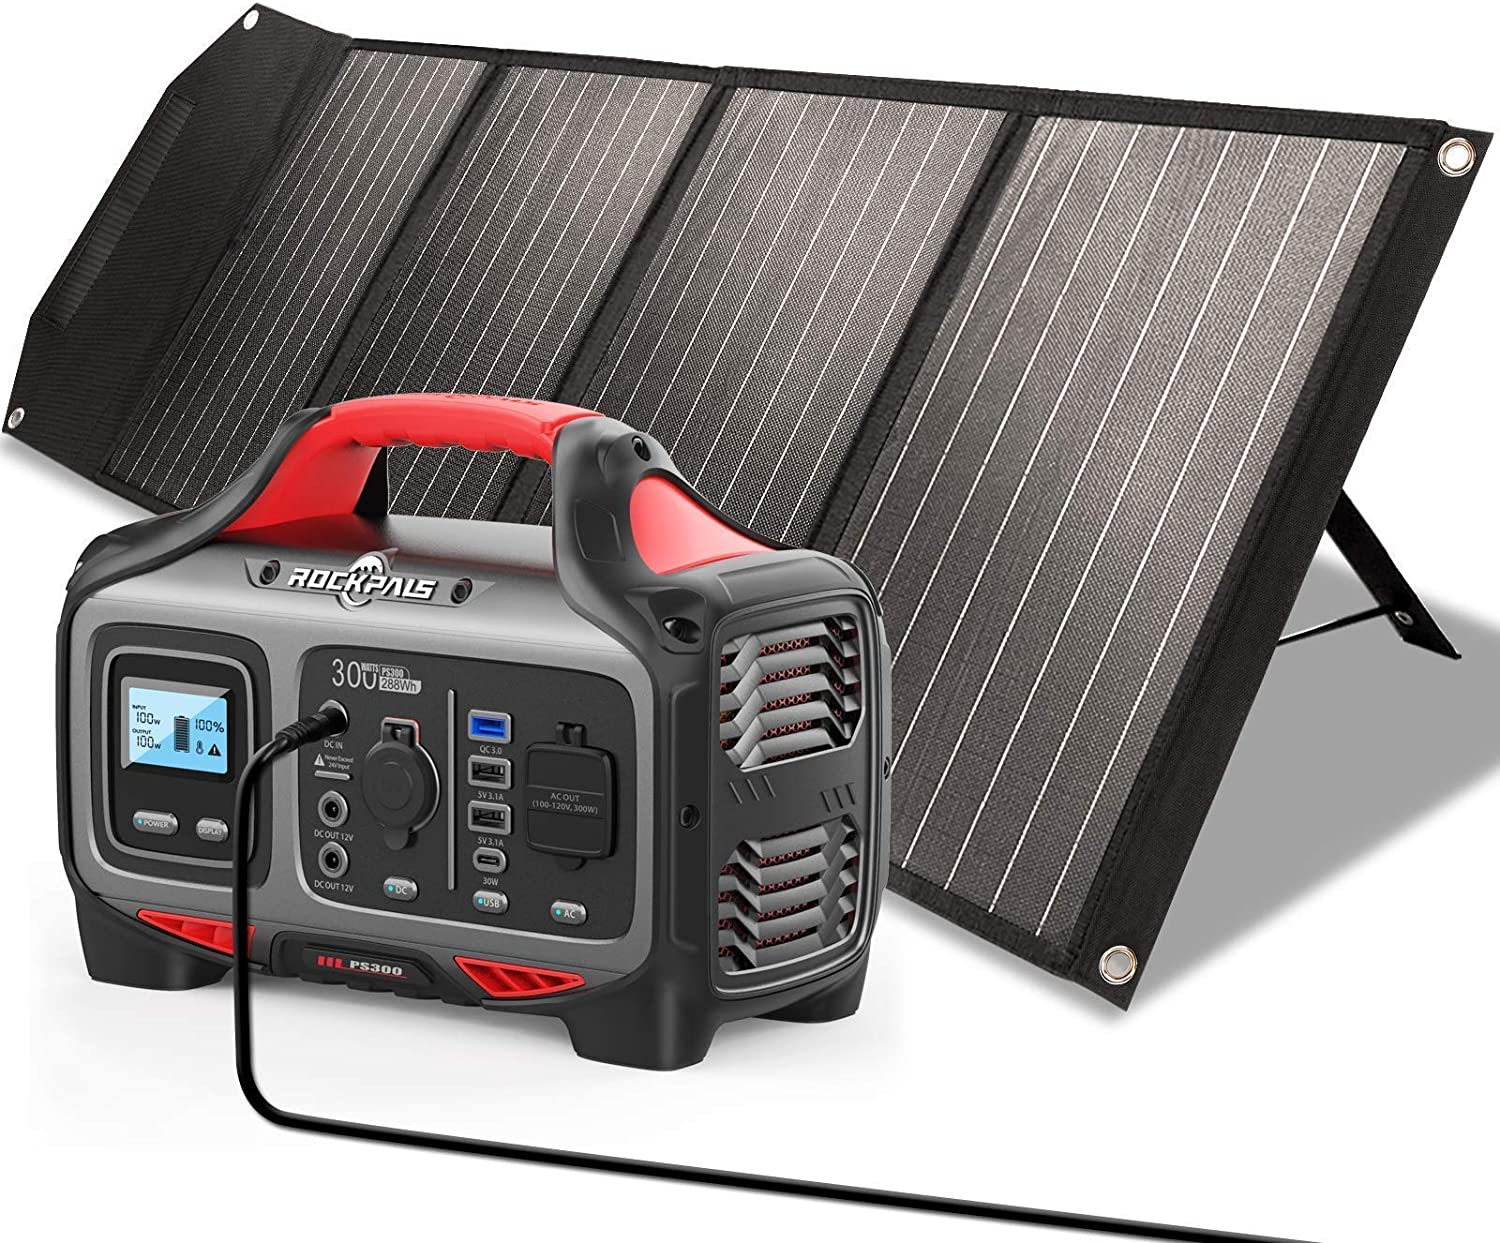 ROCKPALS 300W Portable Power Station and ROCKPALS 100W Upgraded Solar Panel, Great Solar Generator for Backup Power, Outdoor Adventure and Camping